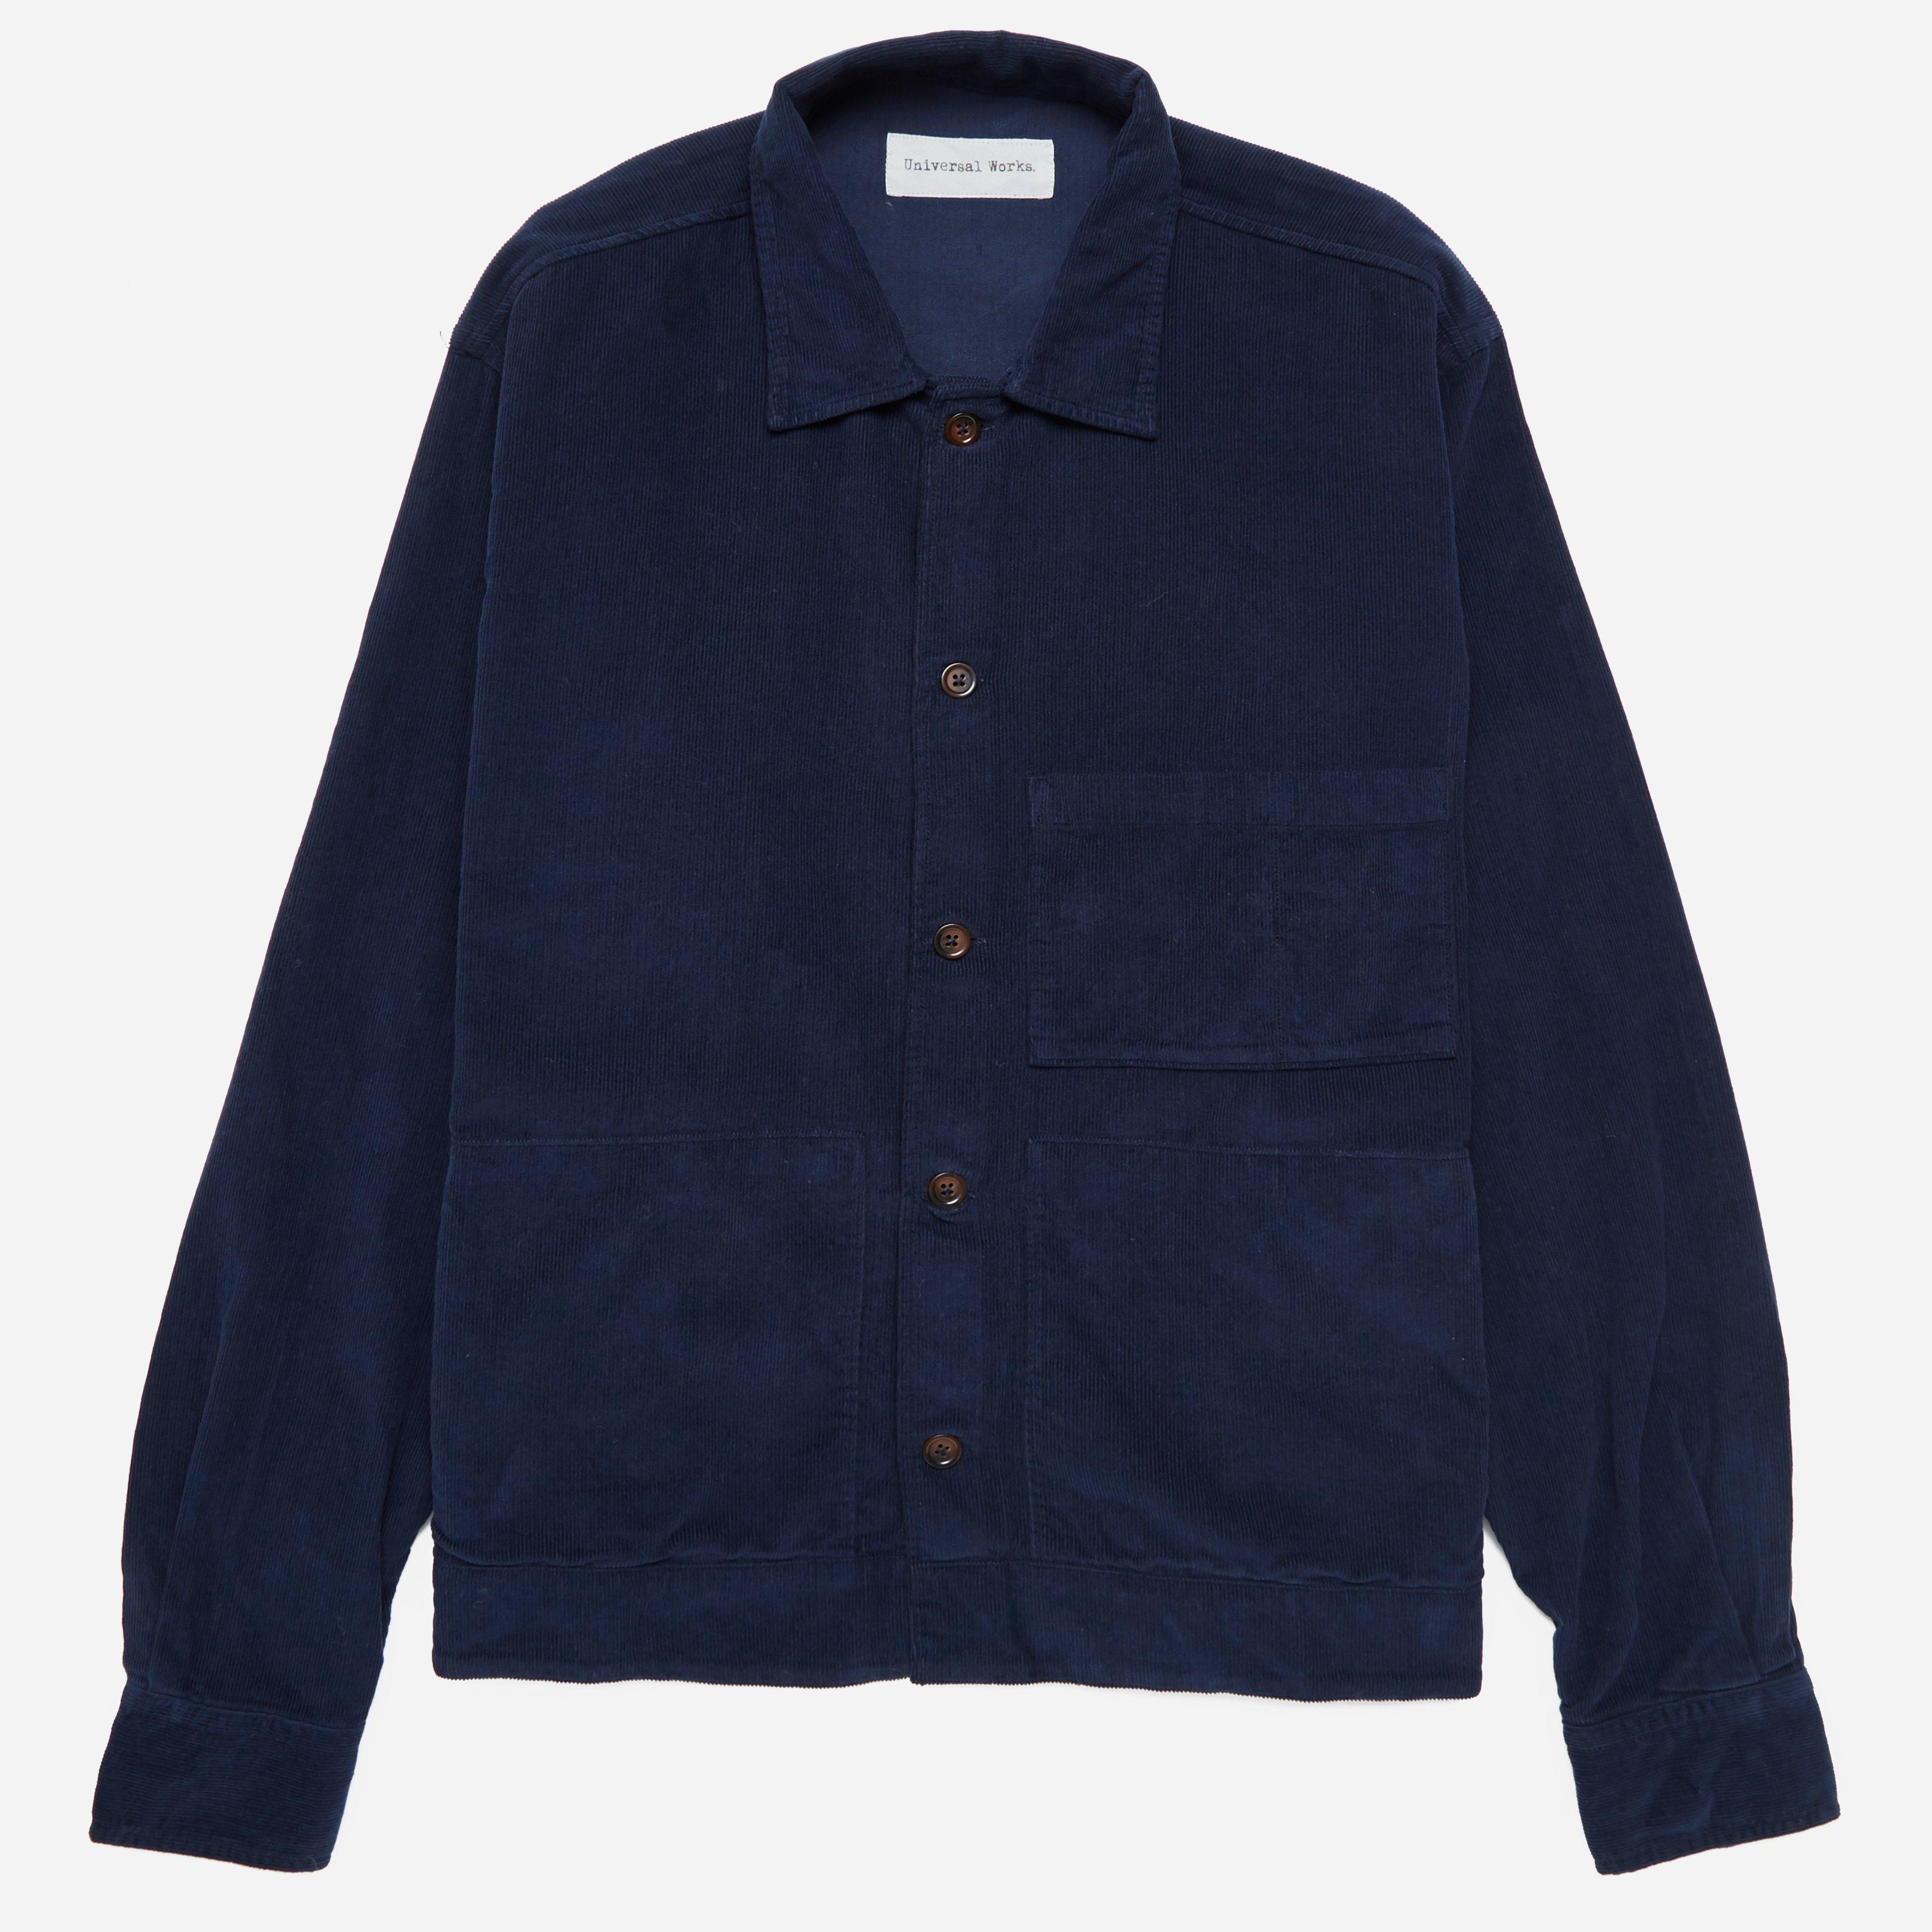 Universal Works Fine Cord Uniform Shirt